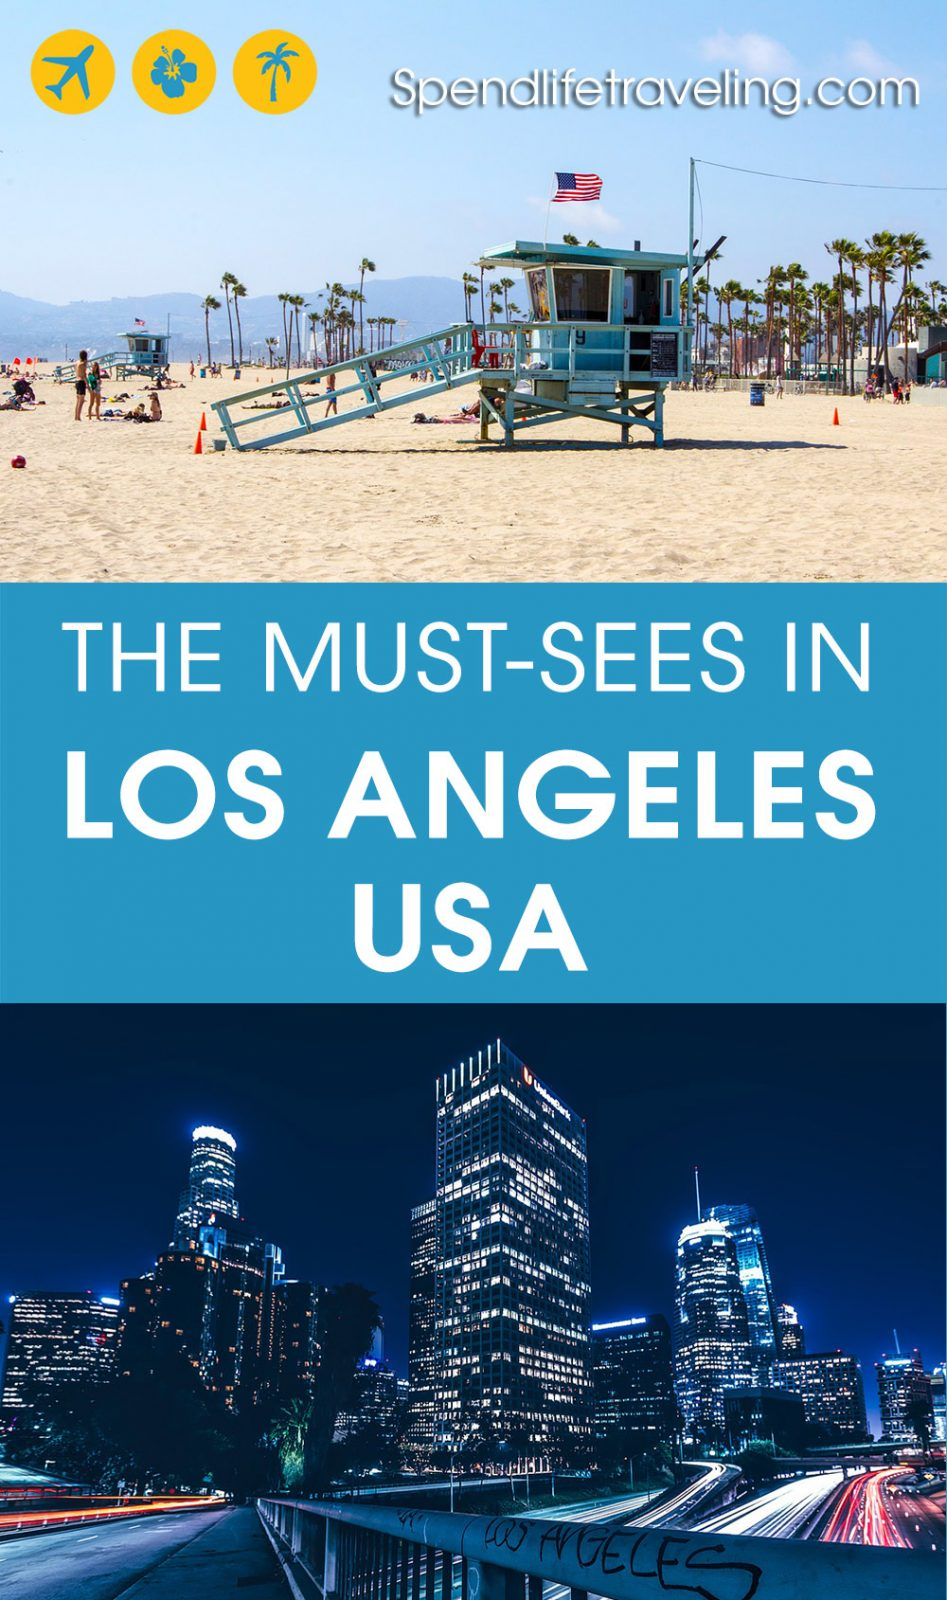 Are you planning a short trip to #LA? Check out what not to miss in this popular Californian city. #LosAngeles #California #USA #TravelUSA